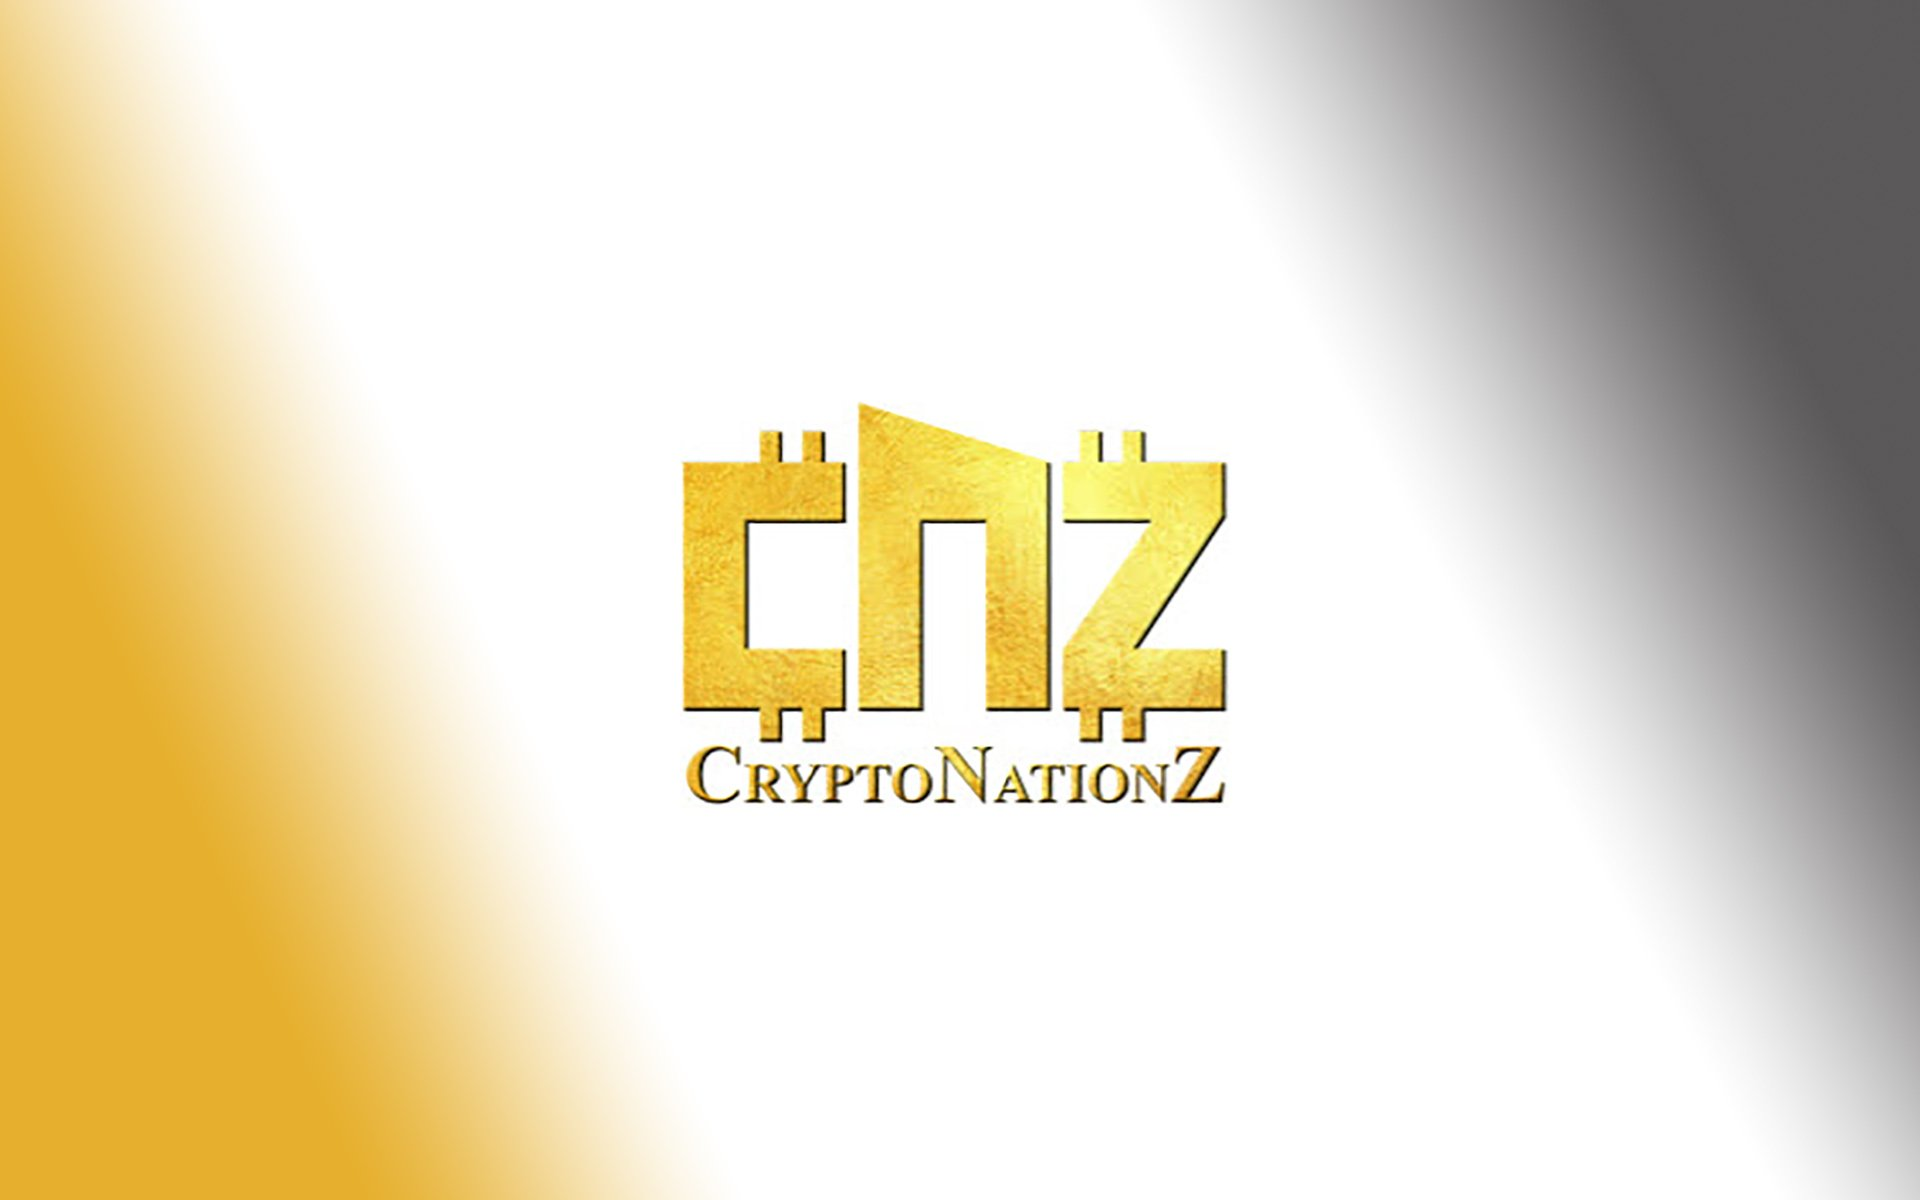 CryptoNationZ Readies for ICO Pre-Sale – Integrates Blockchain Technology with Real-Estate Projects Aimed at the Crypto Community